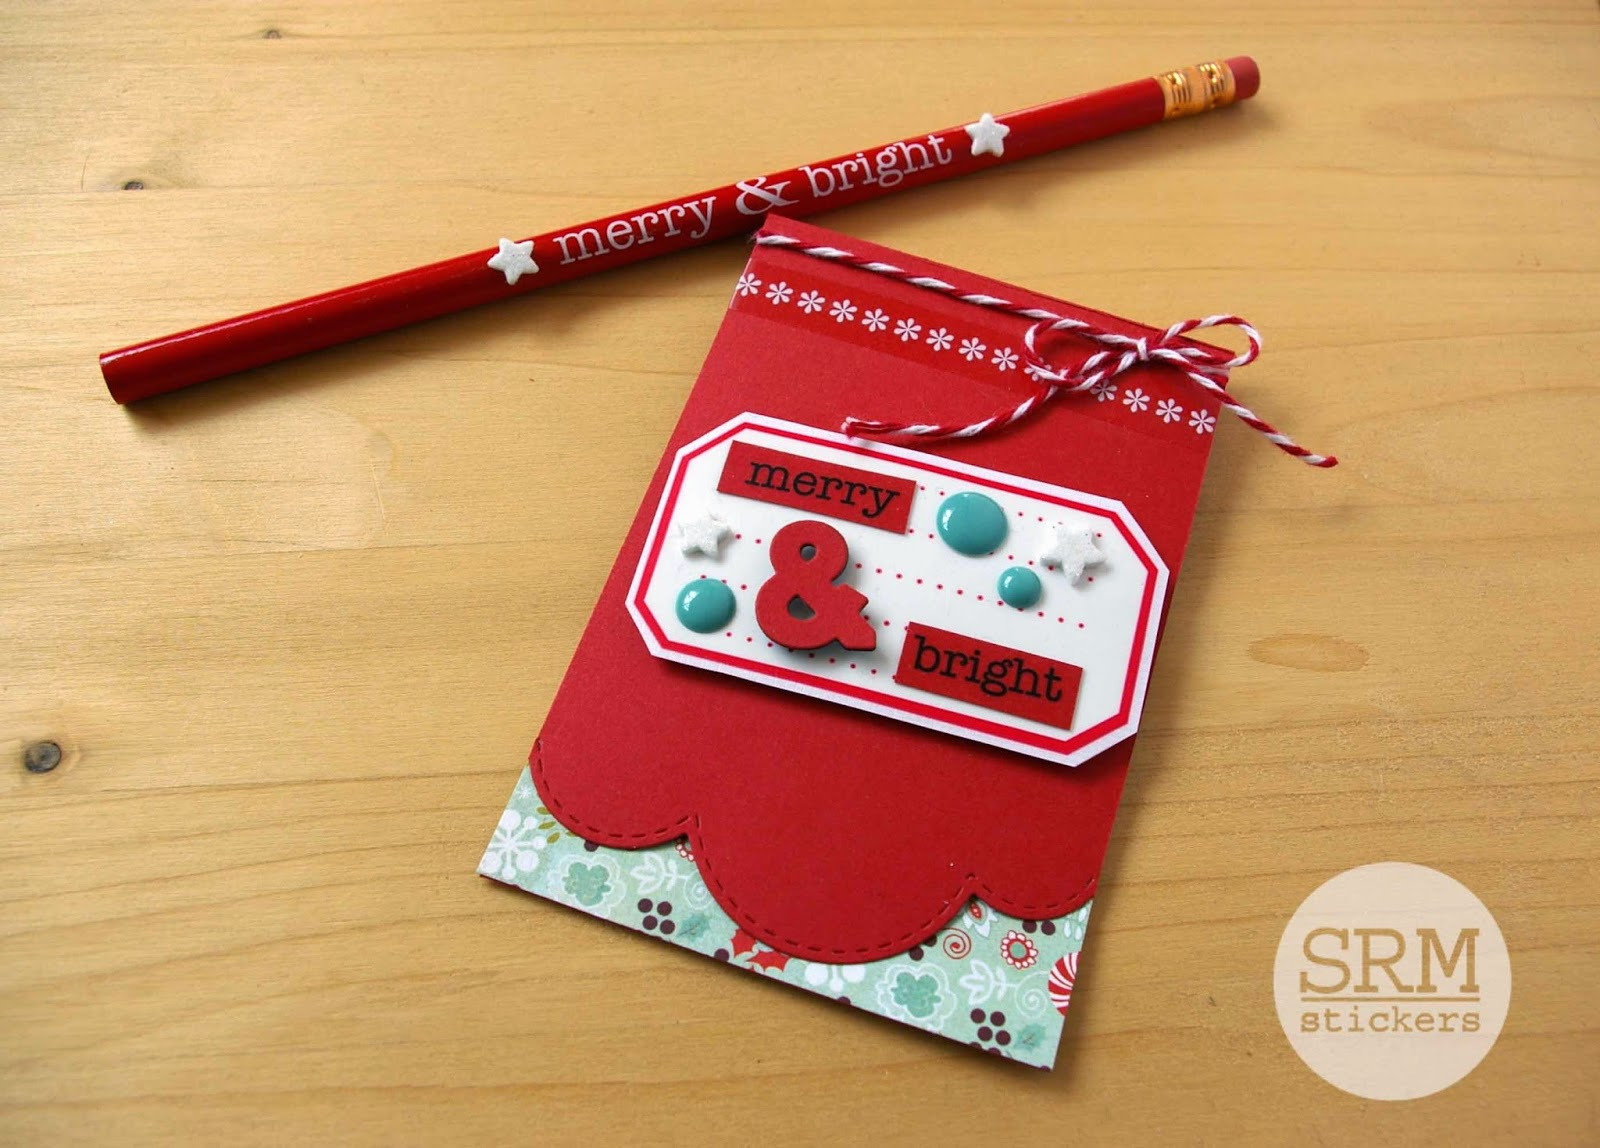 SRM Stickers Blog - Merry & Bright Stocking Stuffer by Lorena - #christmas #pencils #twine #stickers #stockingstuffer #gift